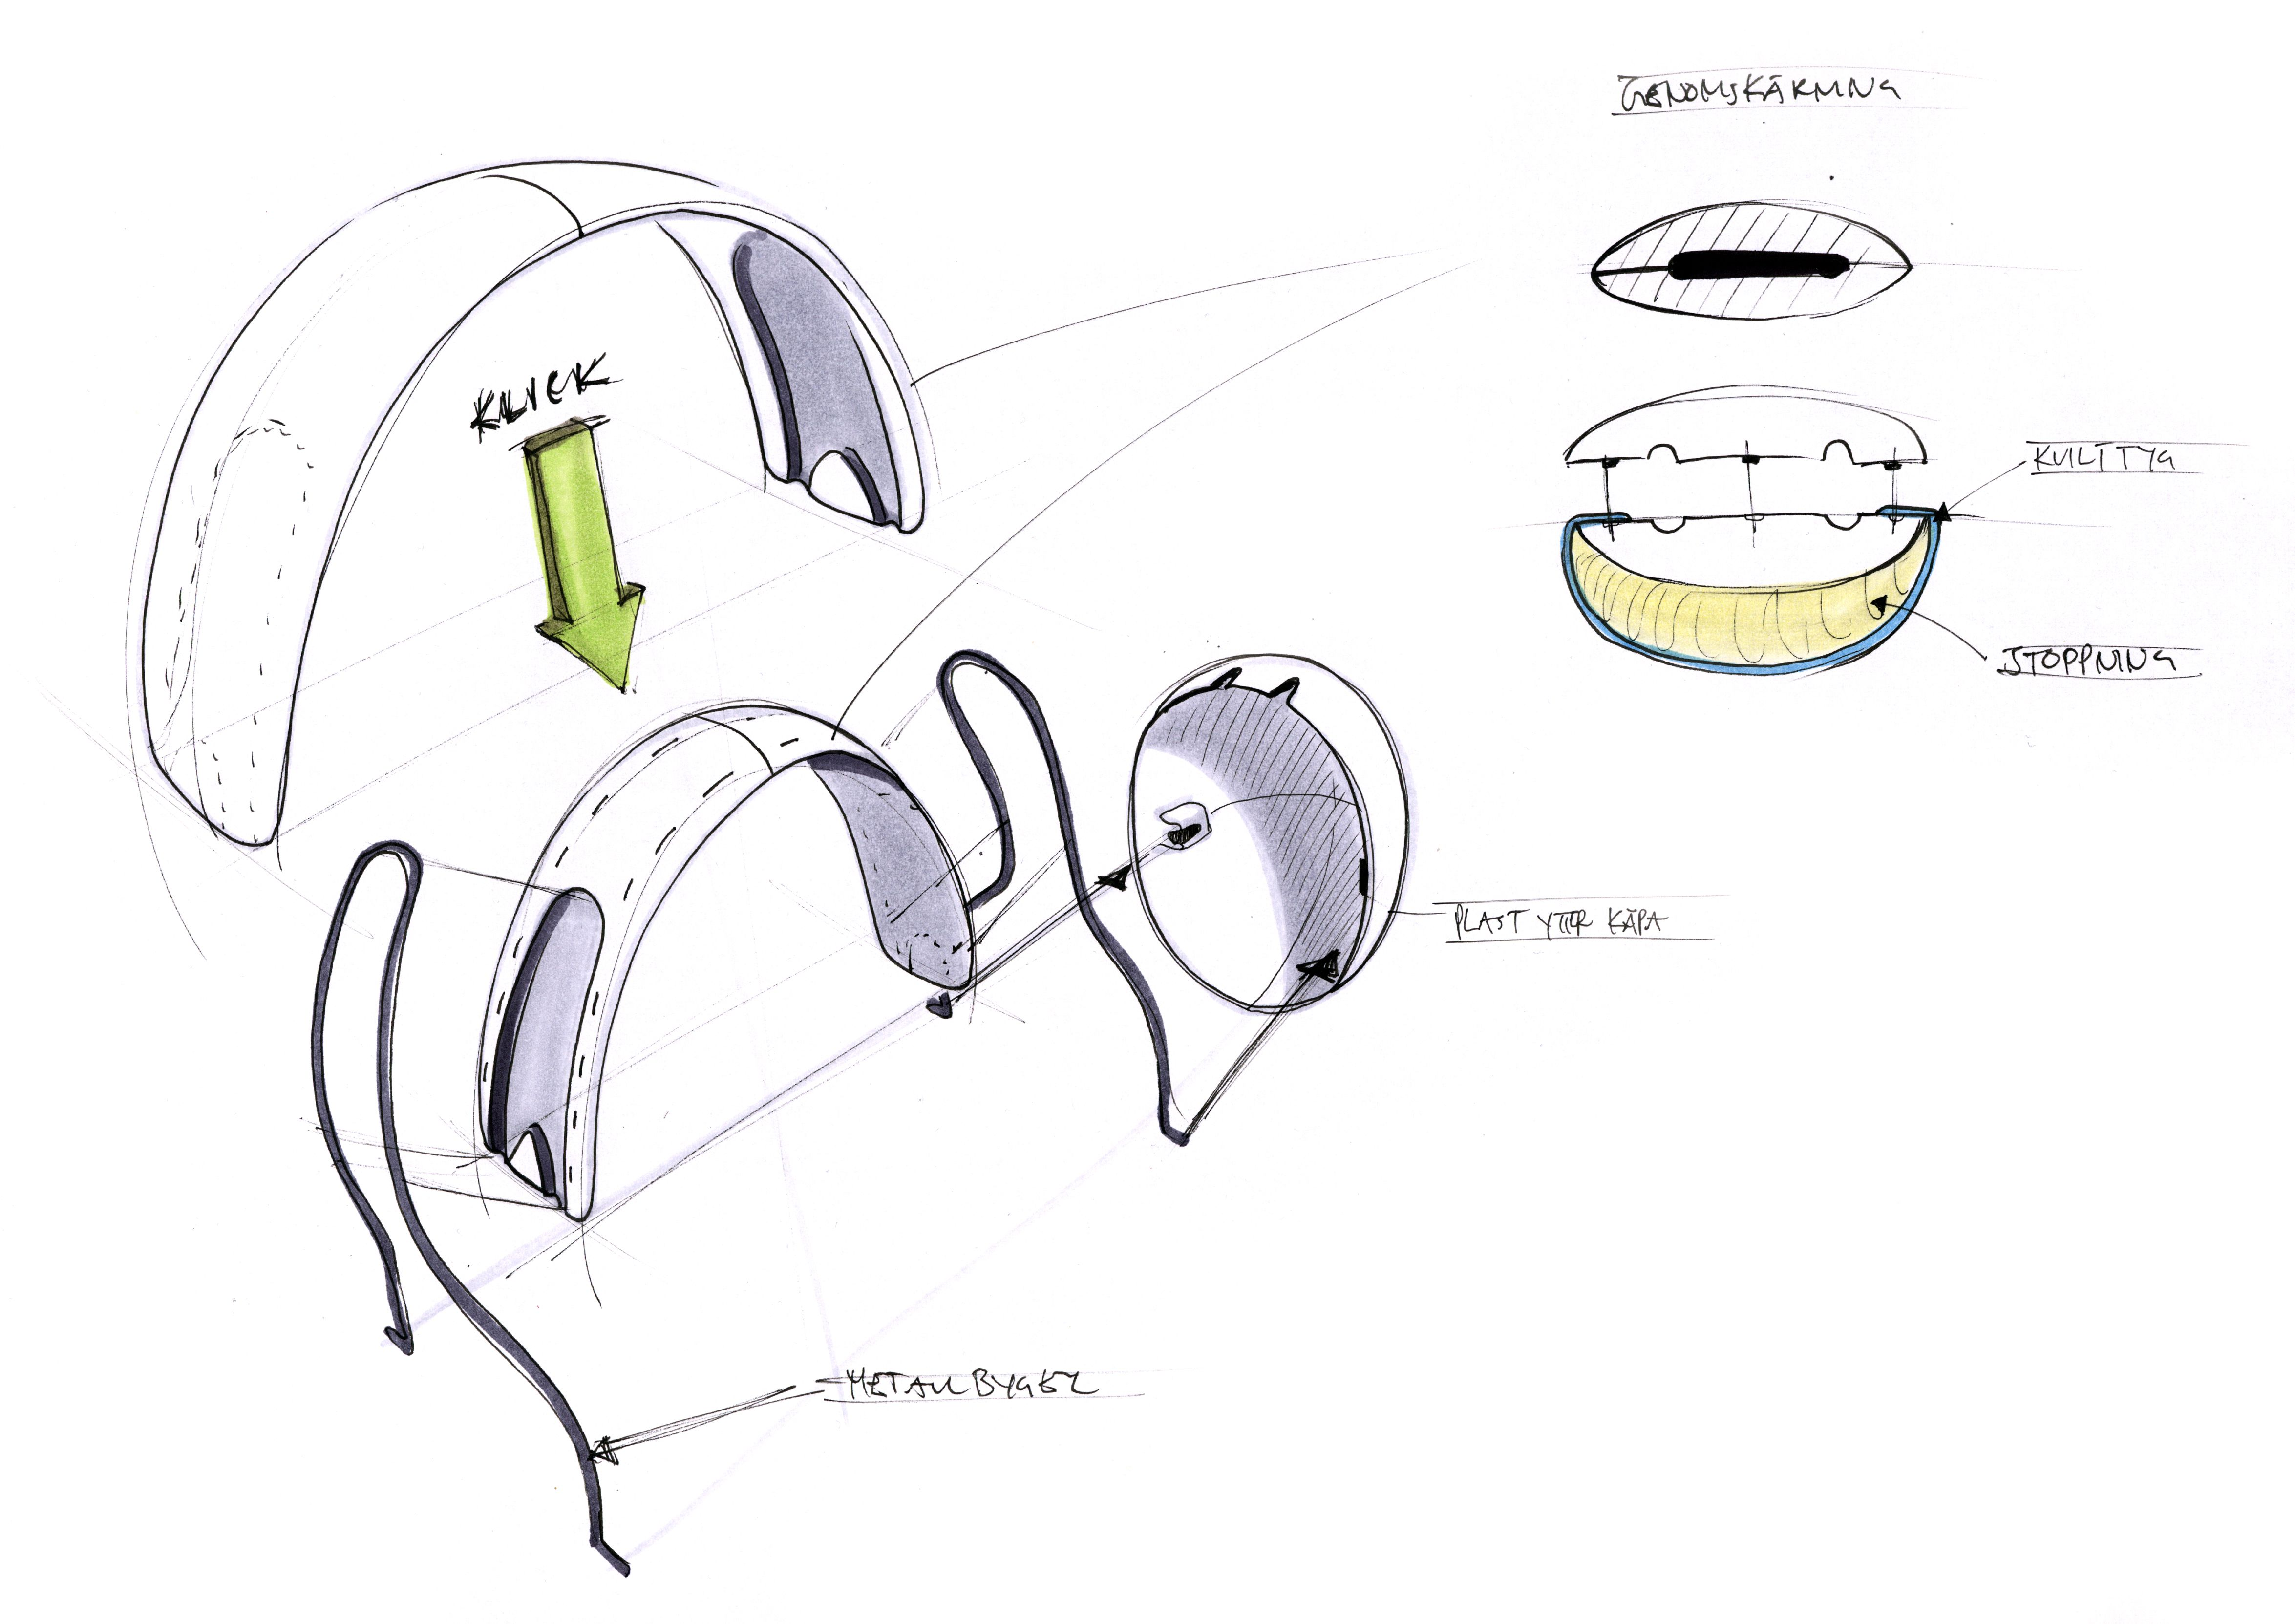 hight resolution of exploded view headphone project sketch